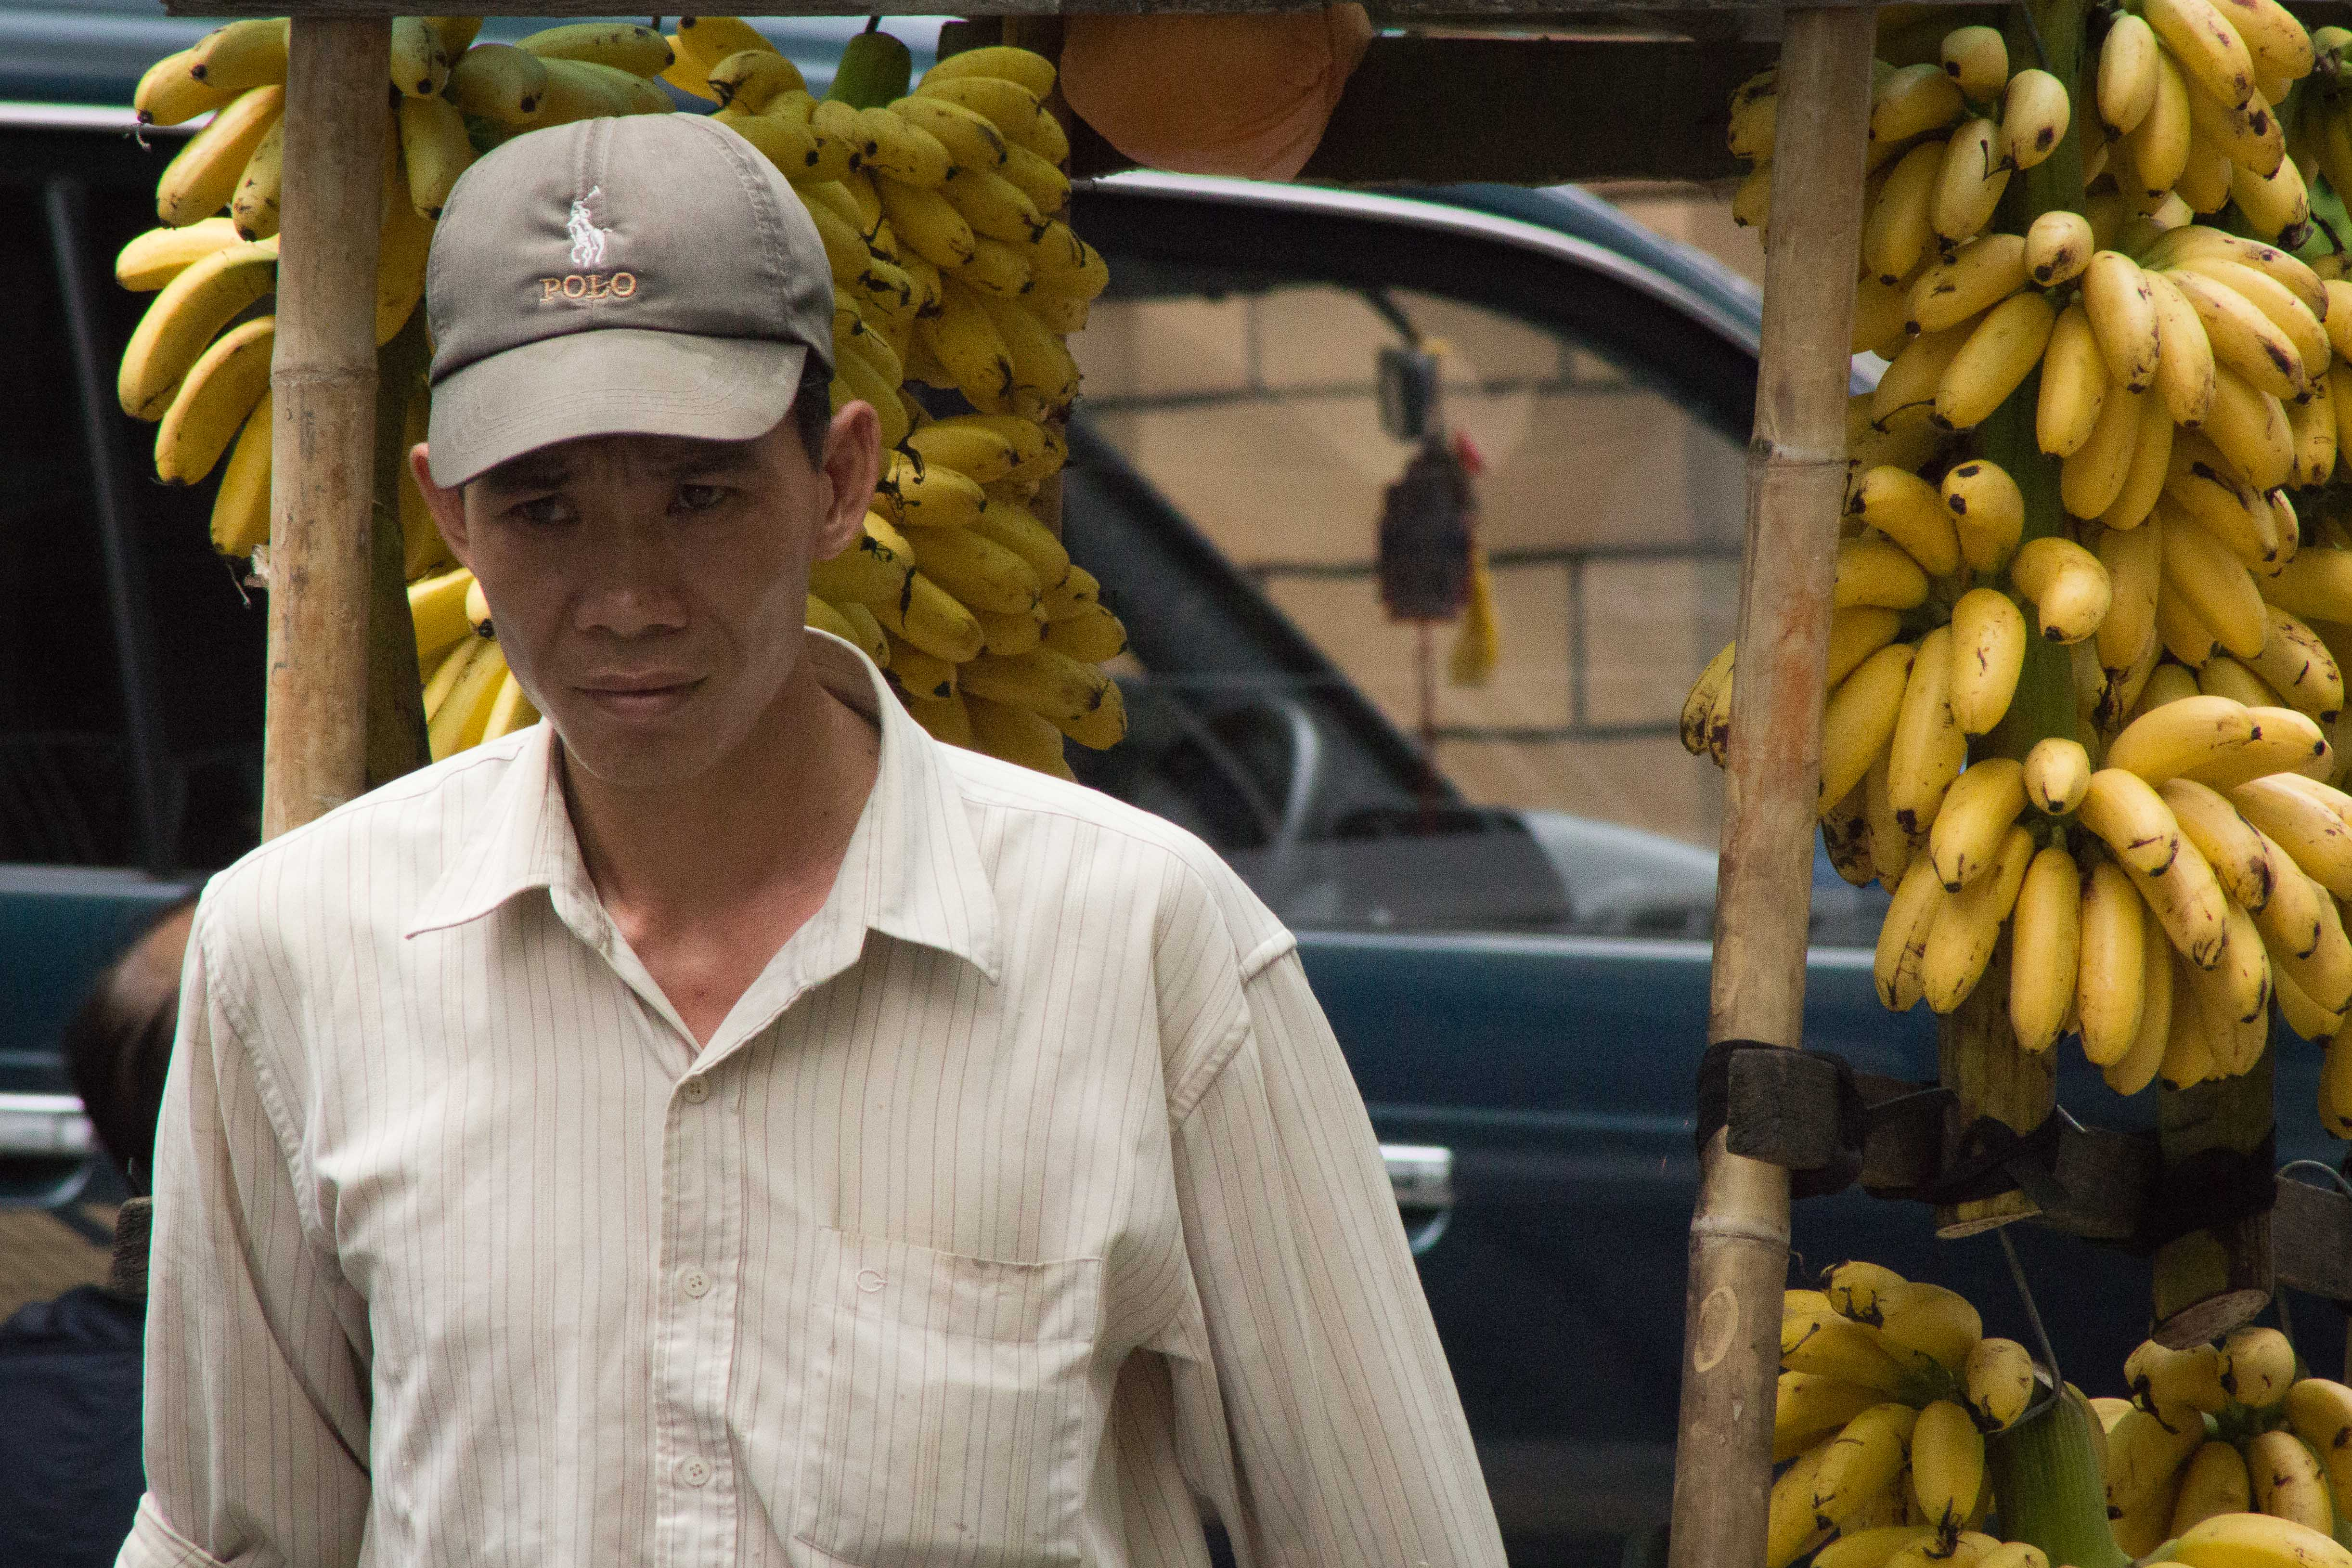 Man with Banana Cart